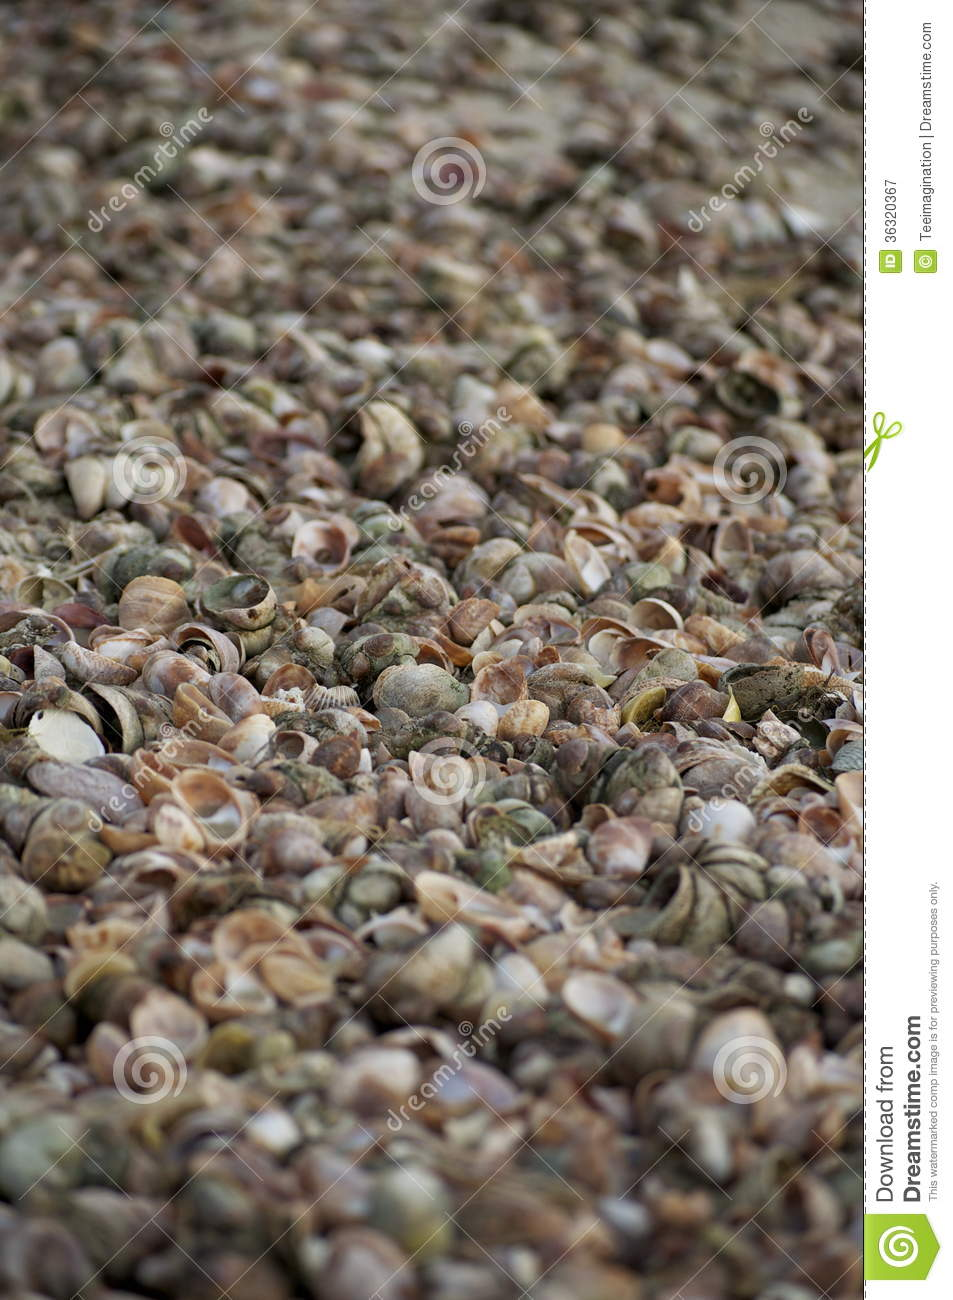 Picture Full Of Sea Shells Royalty Free Stock Photography